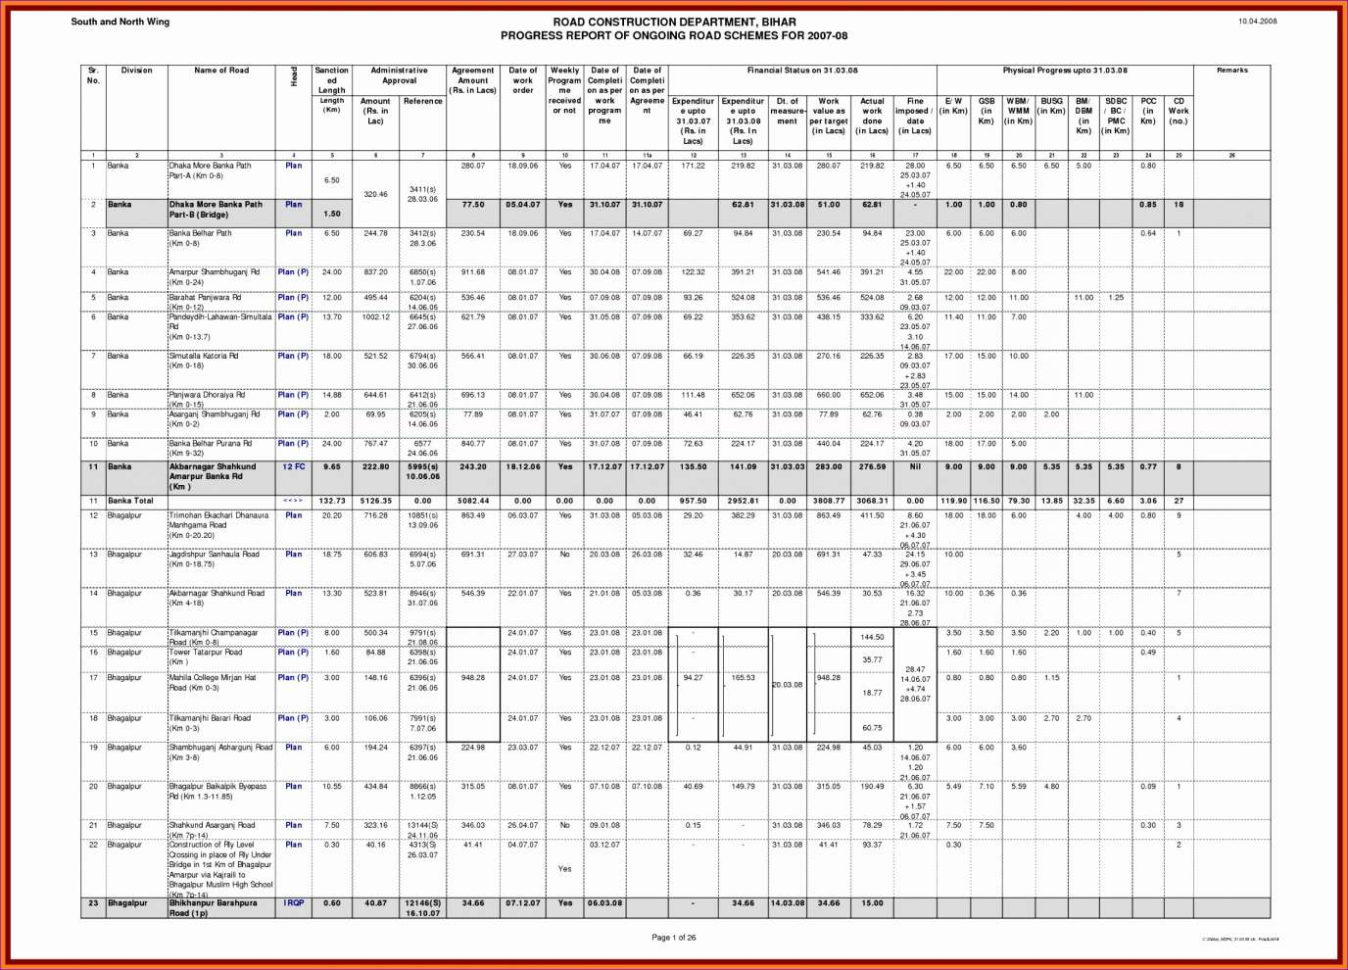 Lab Inventory Spreadsheet Throughout Restaurantventory Spreadsheet Forolab4 Co Example Of With Daily